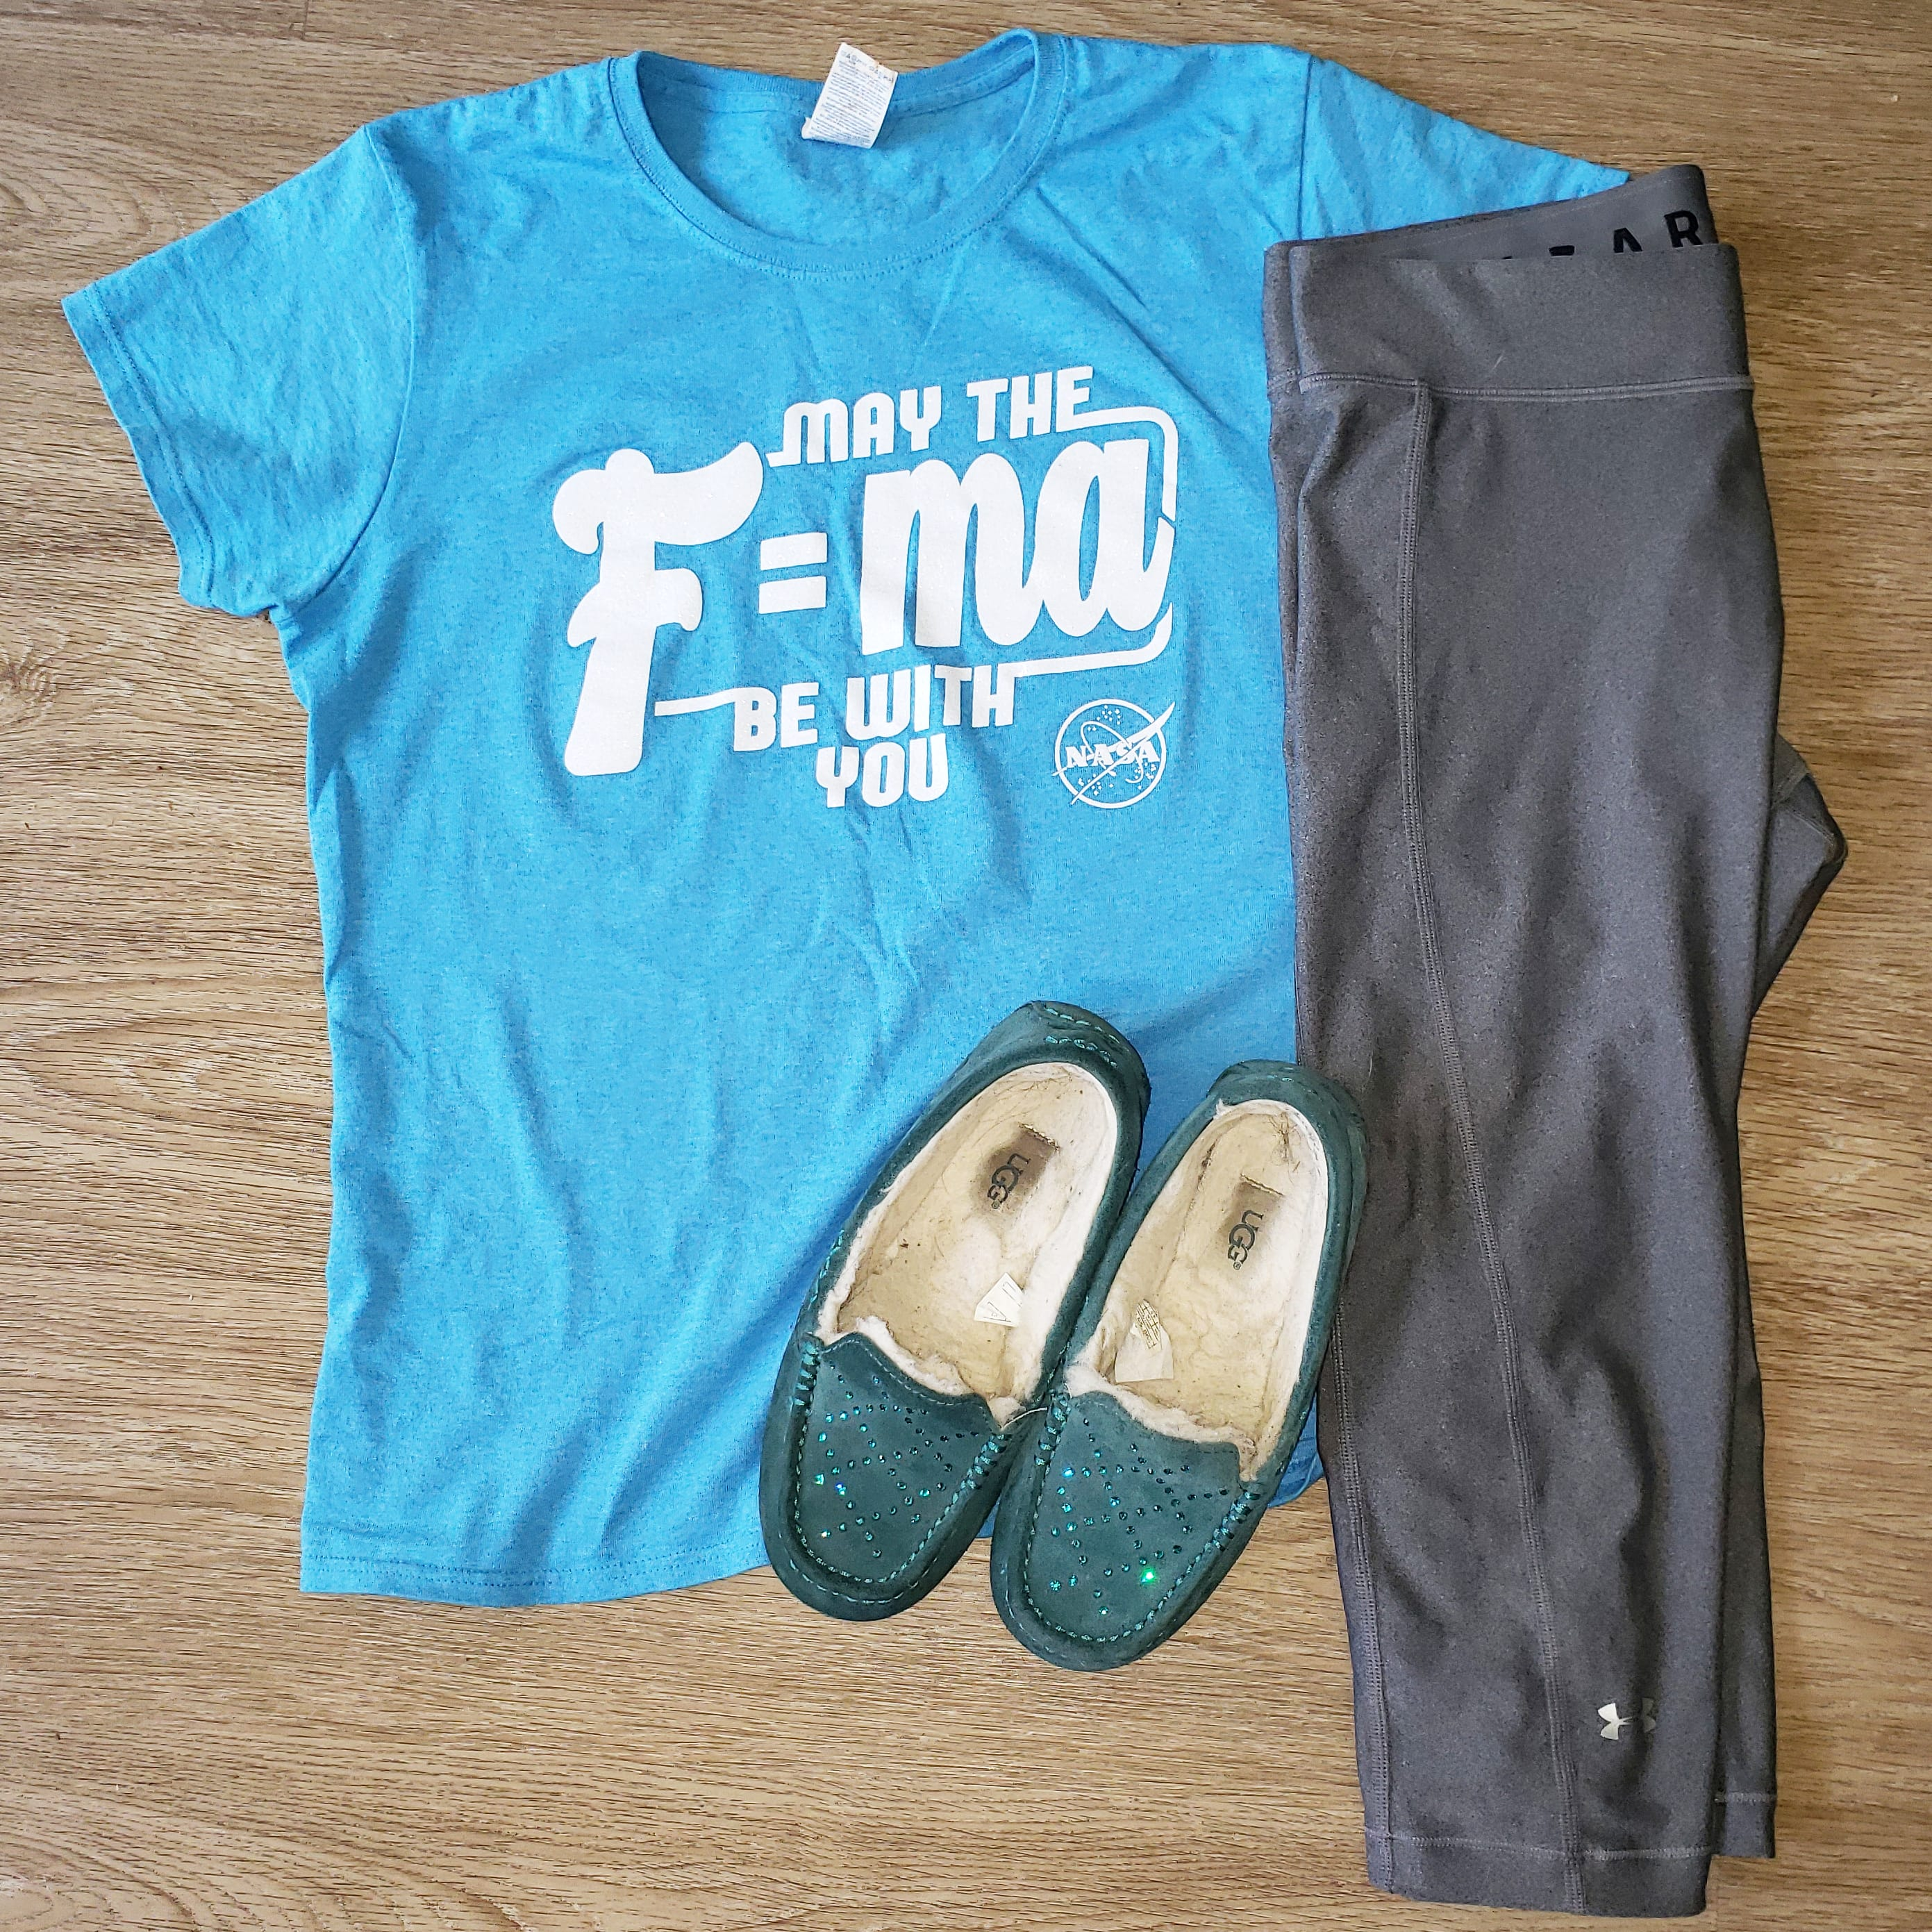 A bright blue shirt reads May the F=ma be with you in sparkling white text. Gray leggings and teal slippers are next to the shirt.